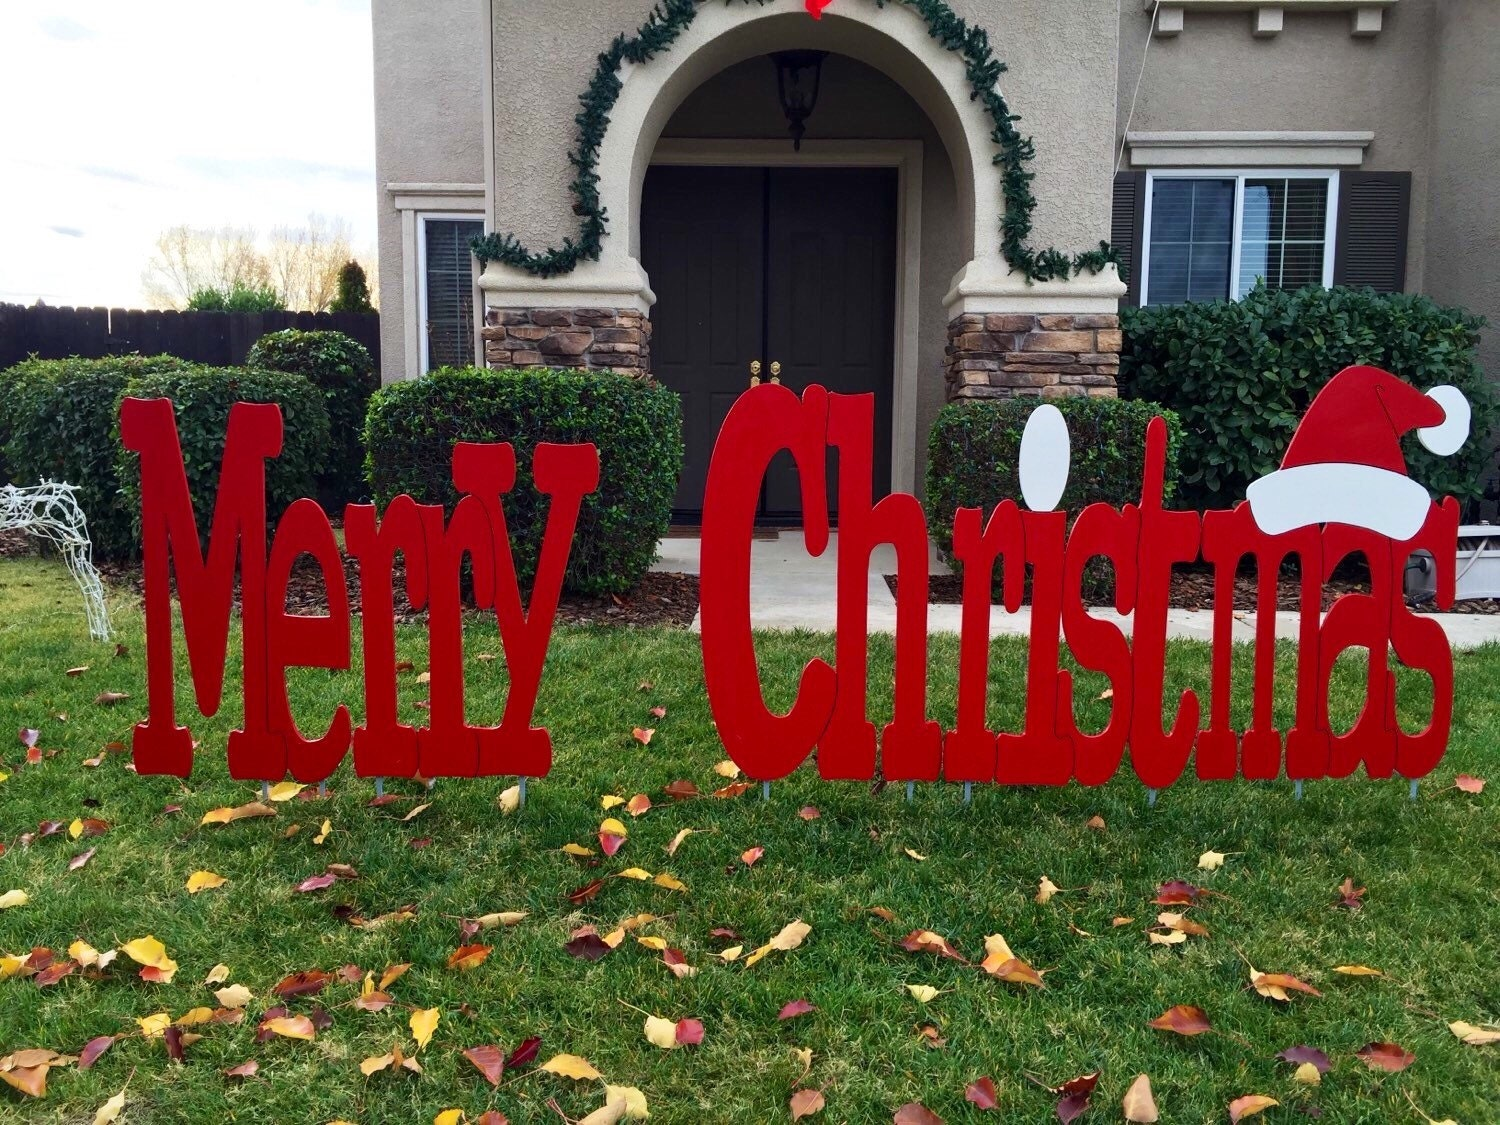 Merry christmas outdoor holiday yard art sign large for Large outdoor christmas signs